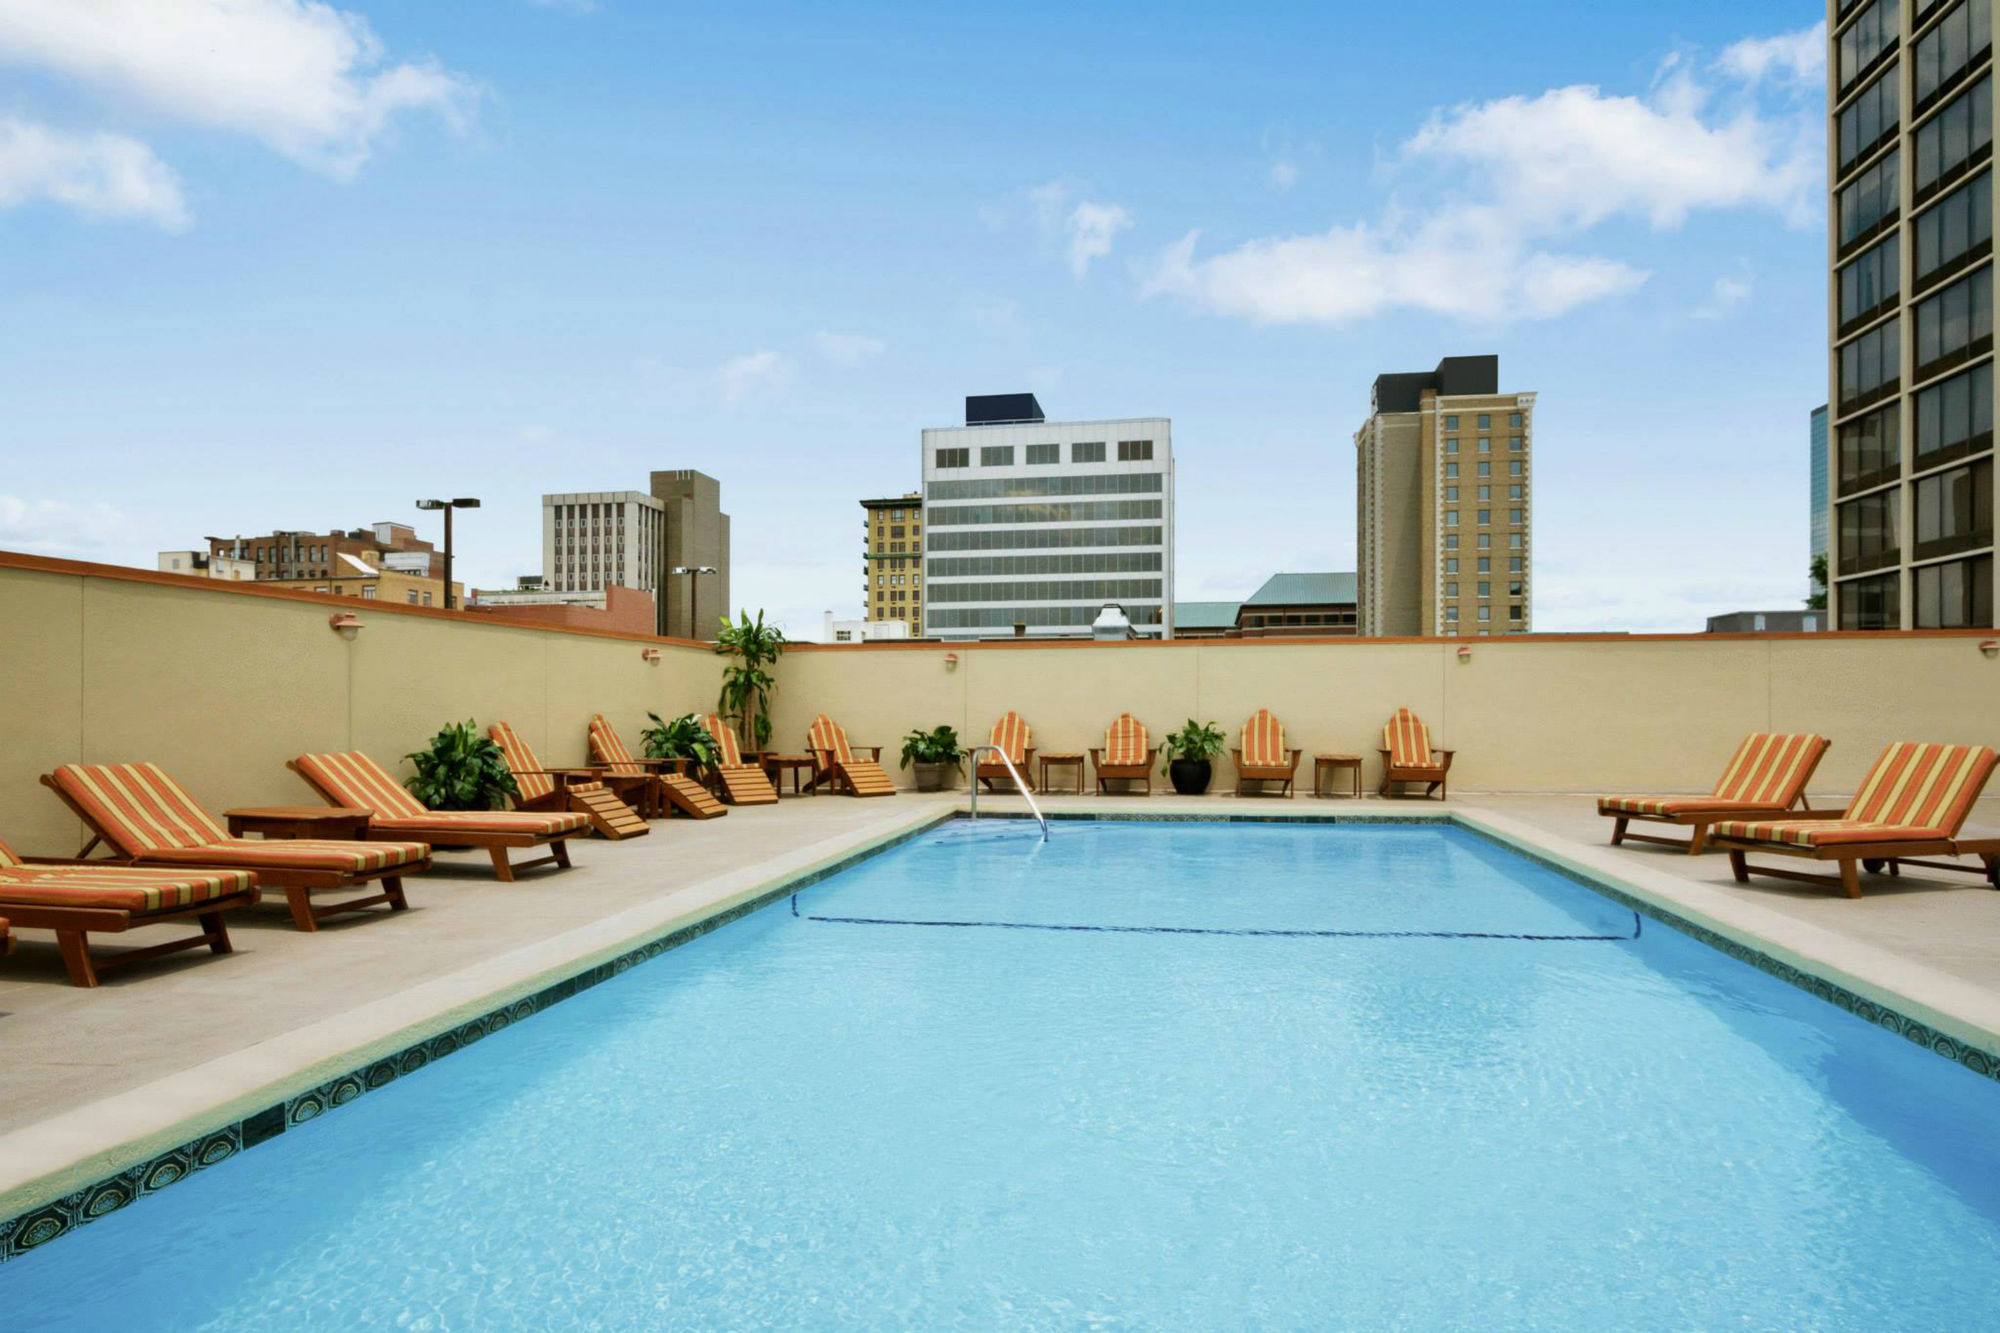 Hilton Knoxville in Knoxville, TN